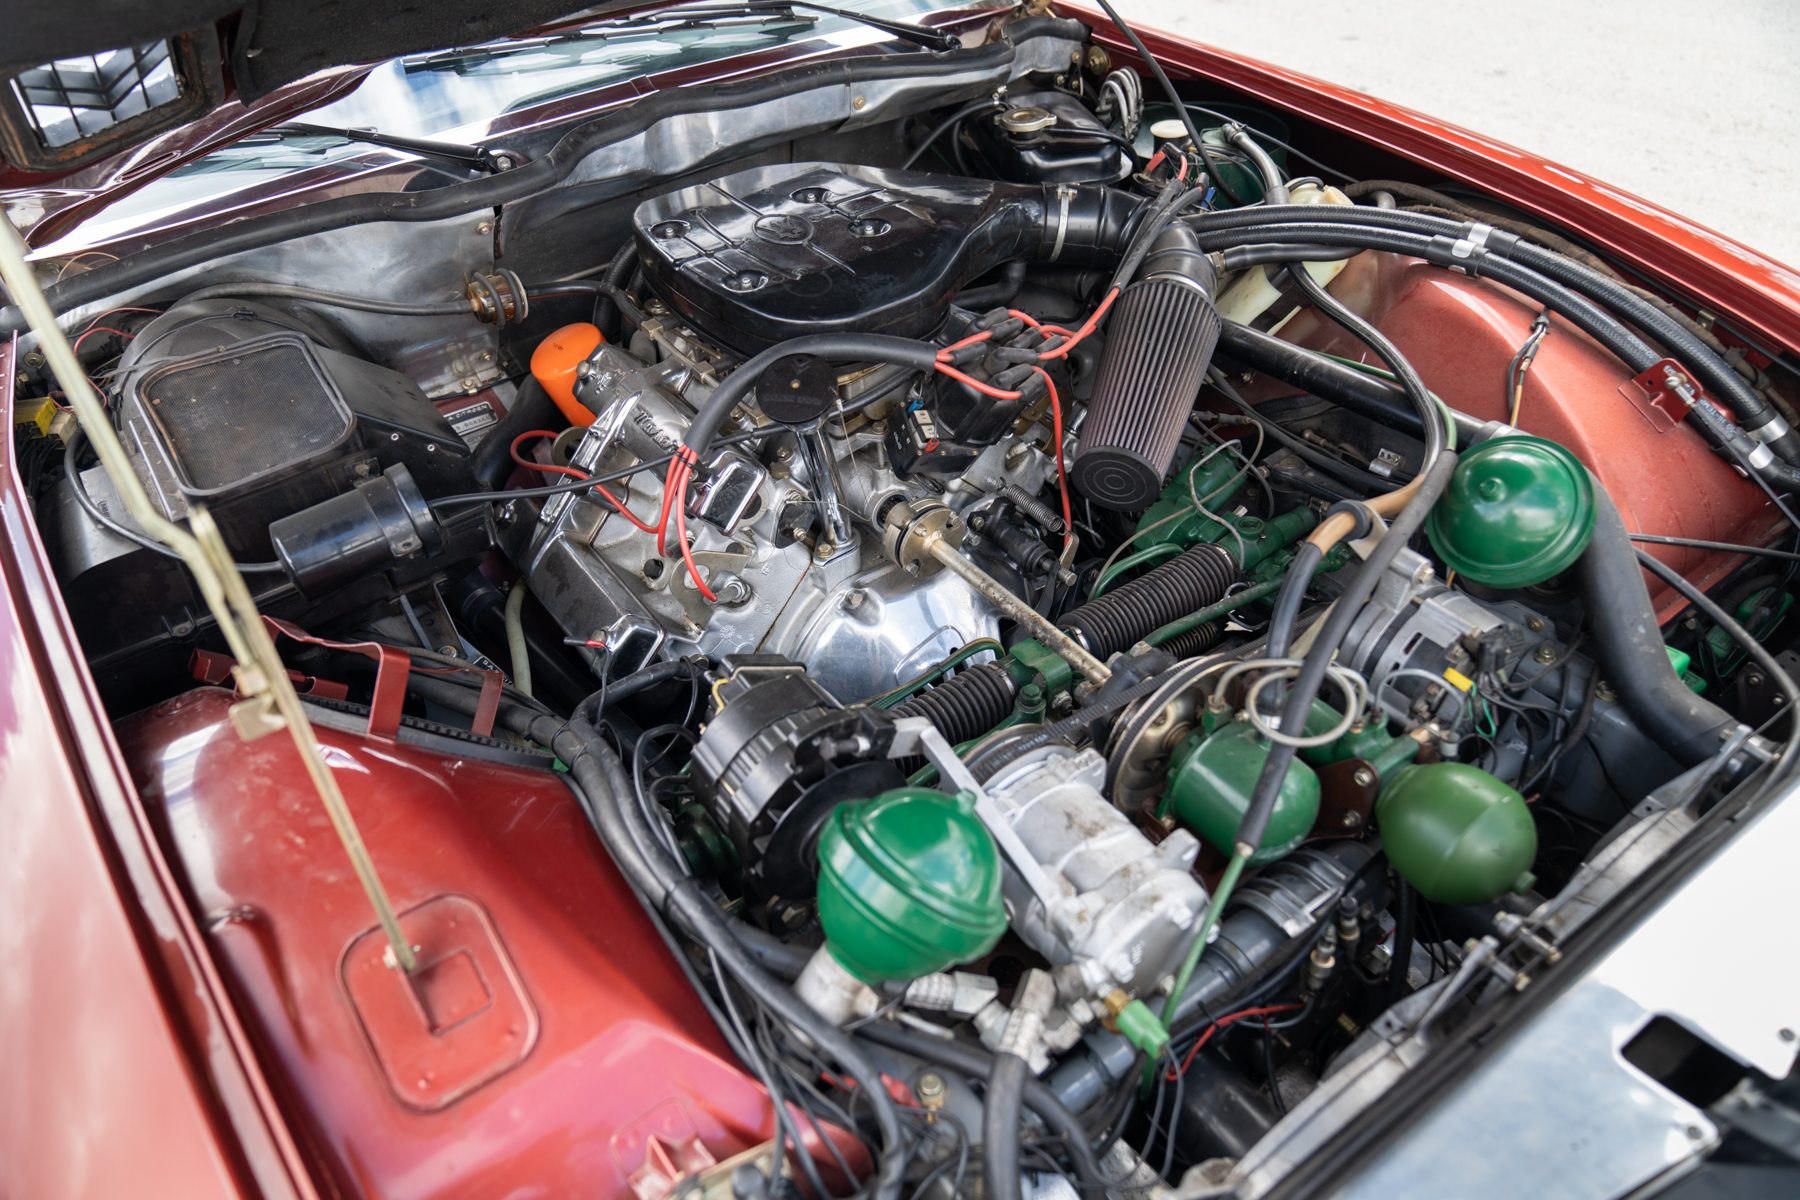 1973 Citroen SM land speed racing tow engine